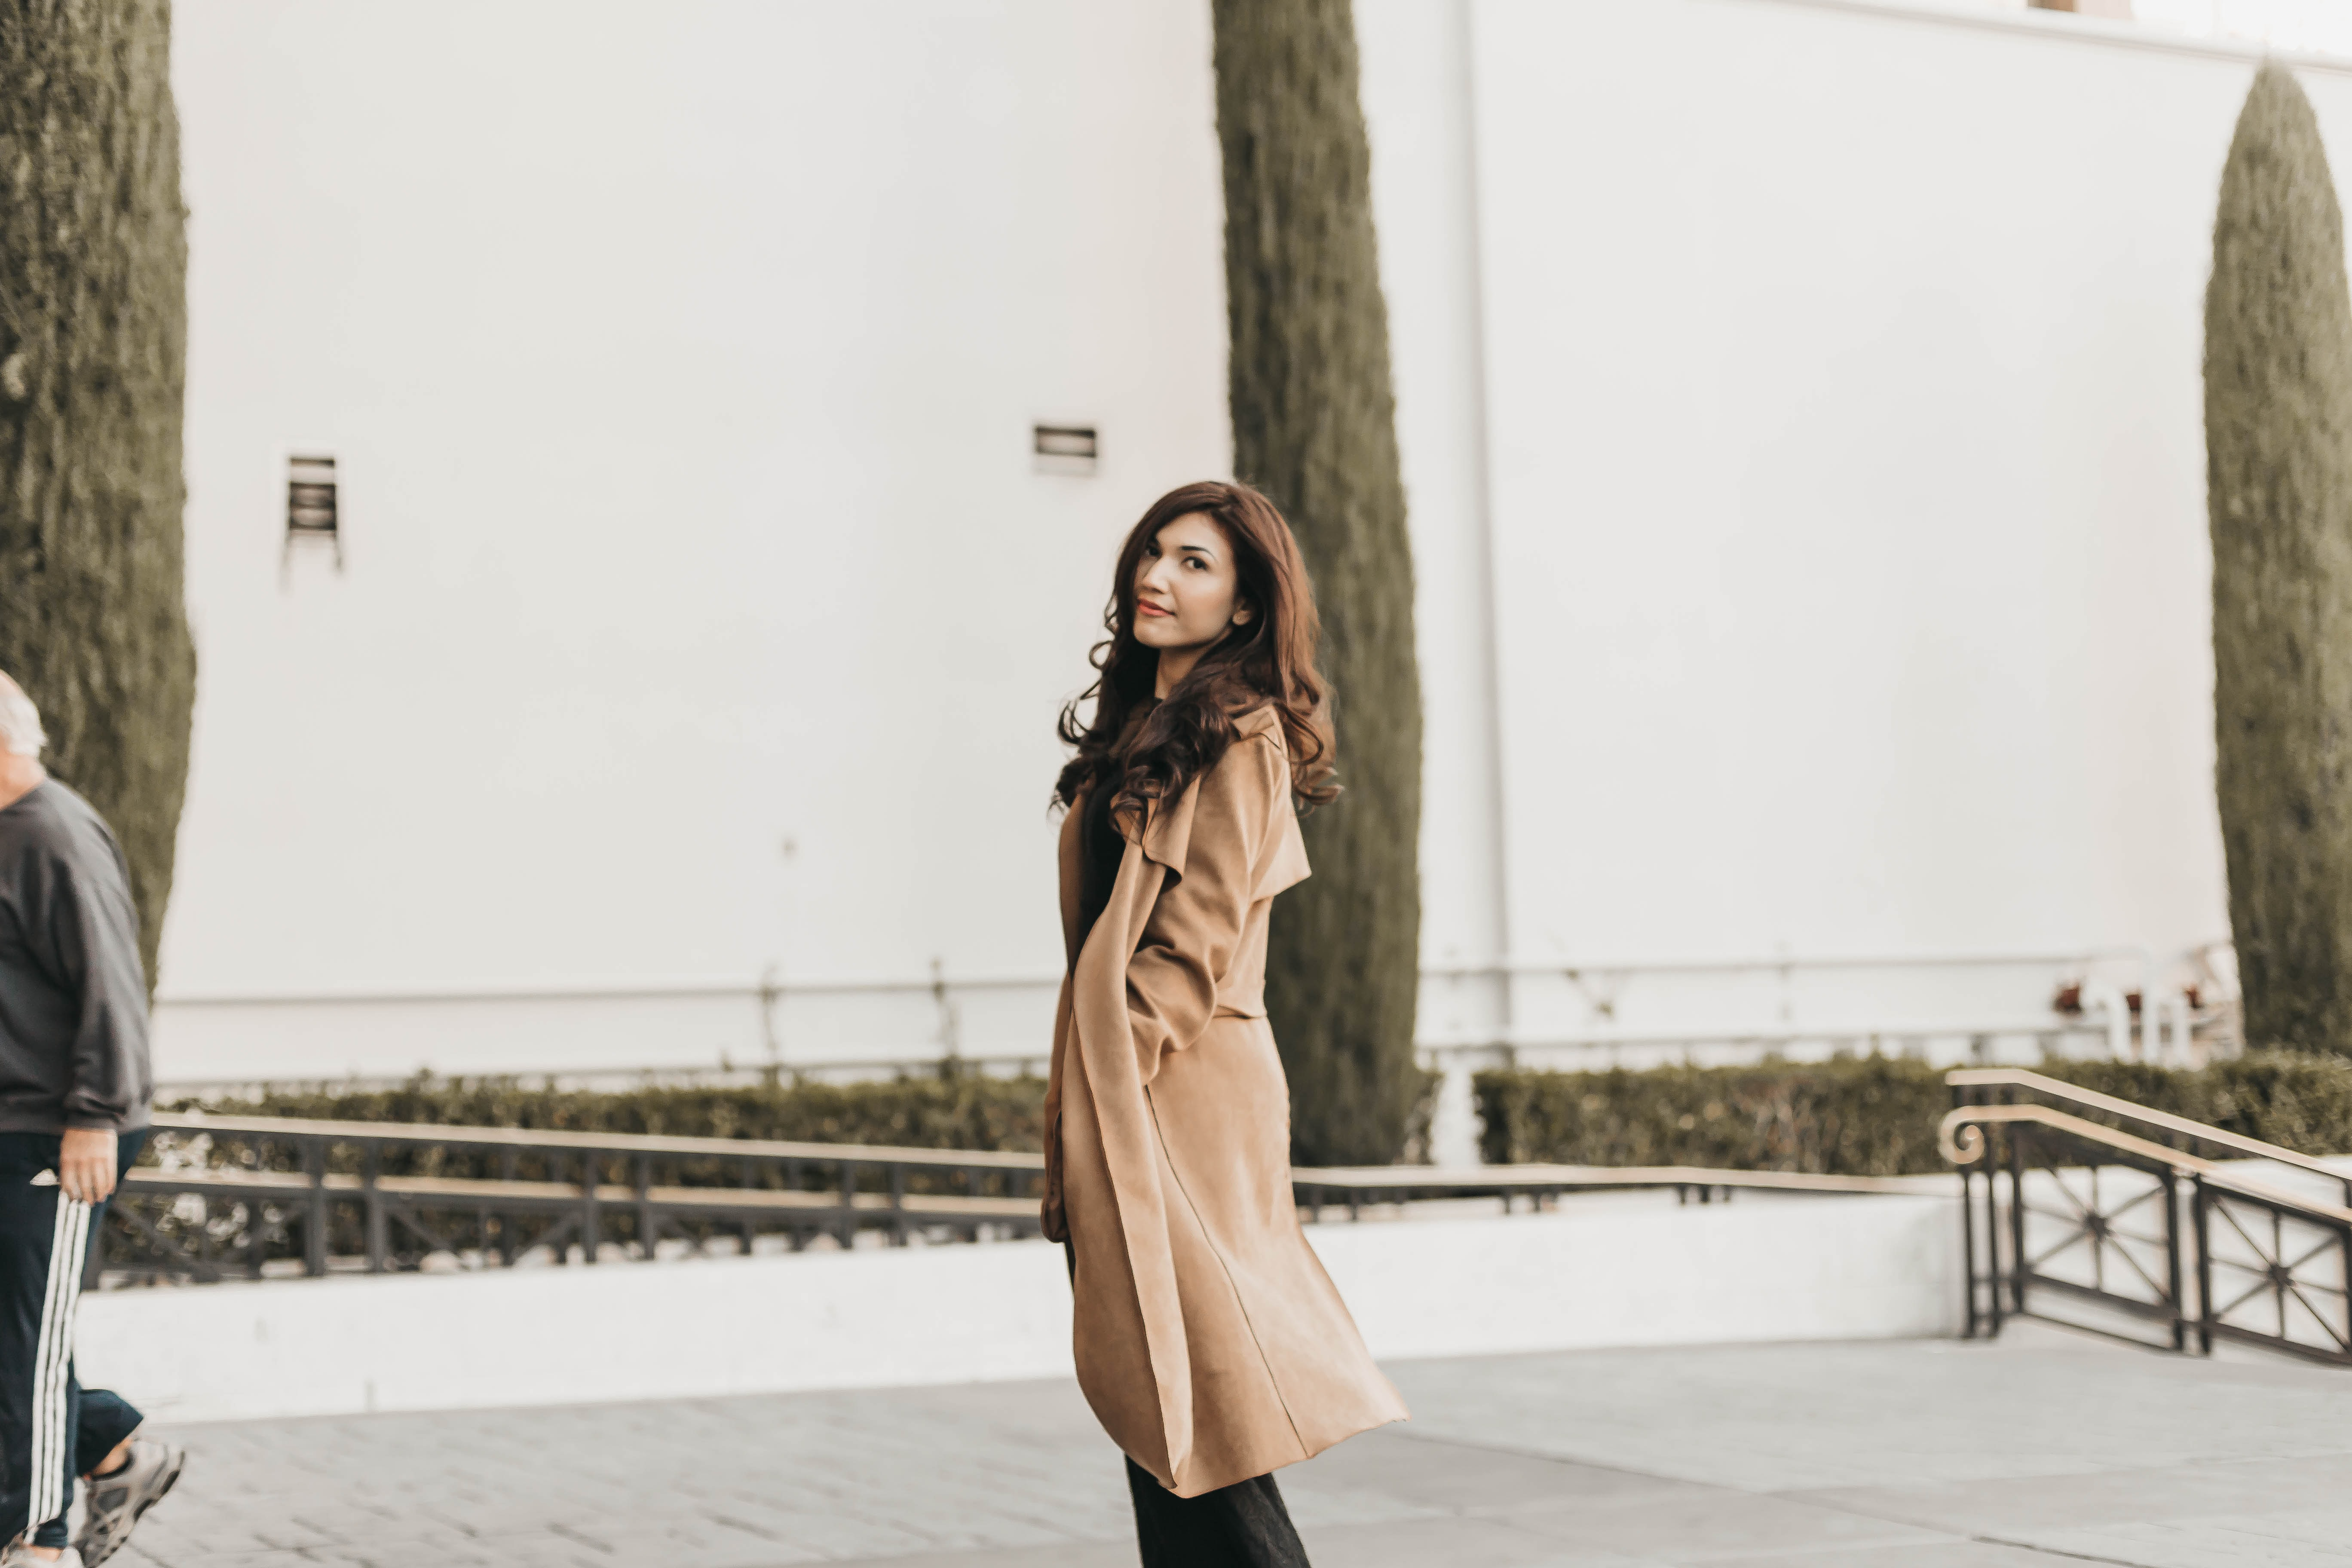 woman standing wearing brown trench coat during daytime